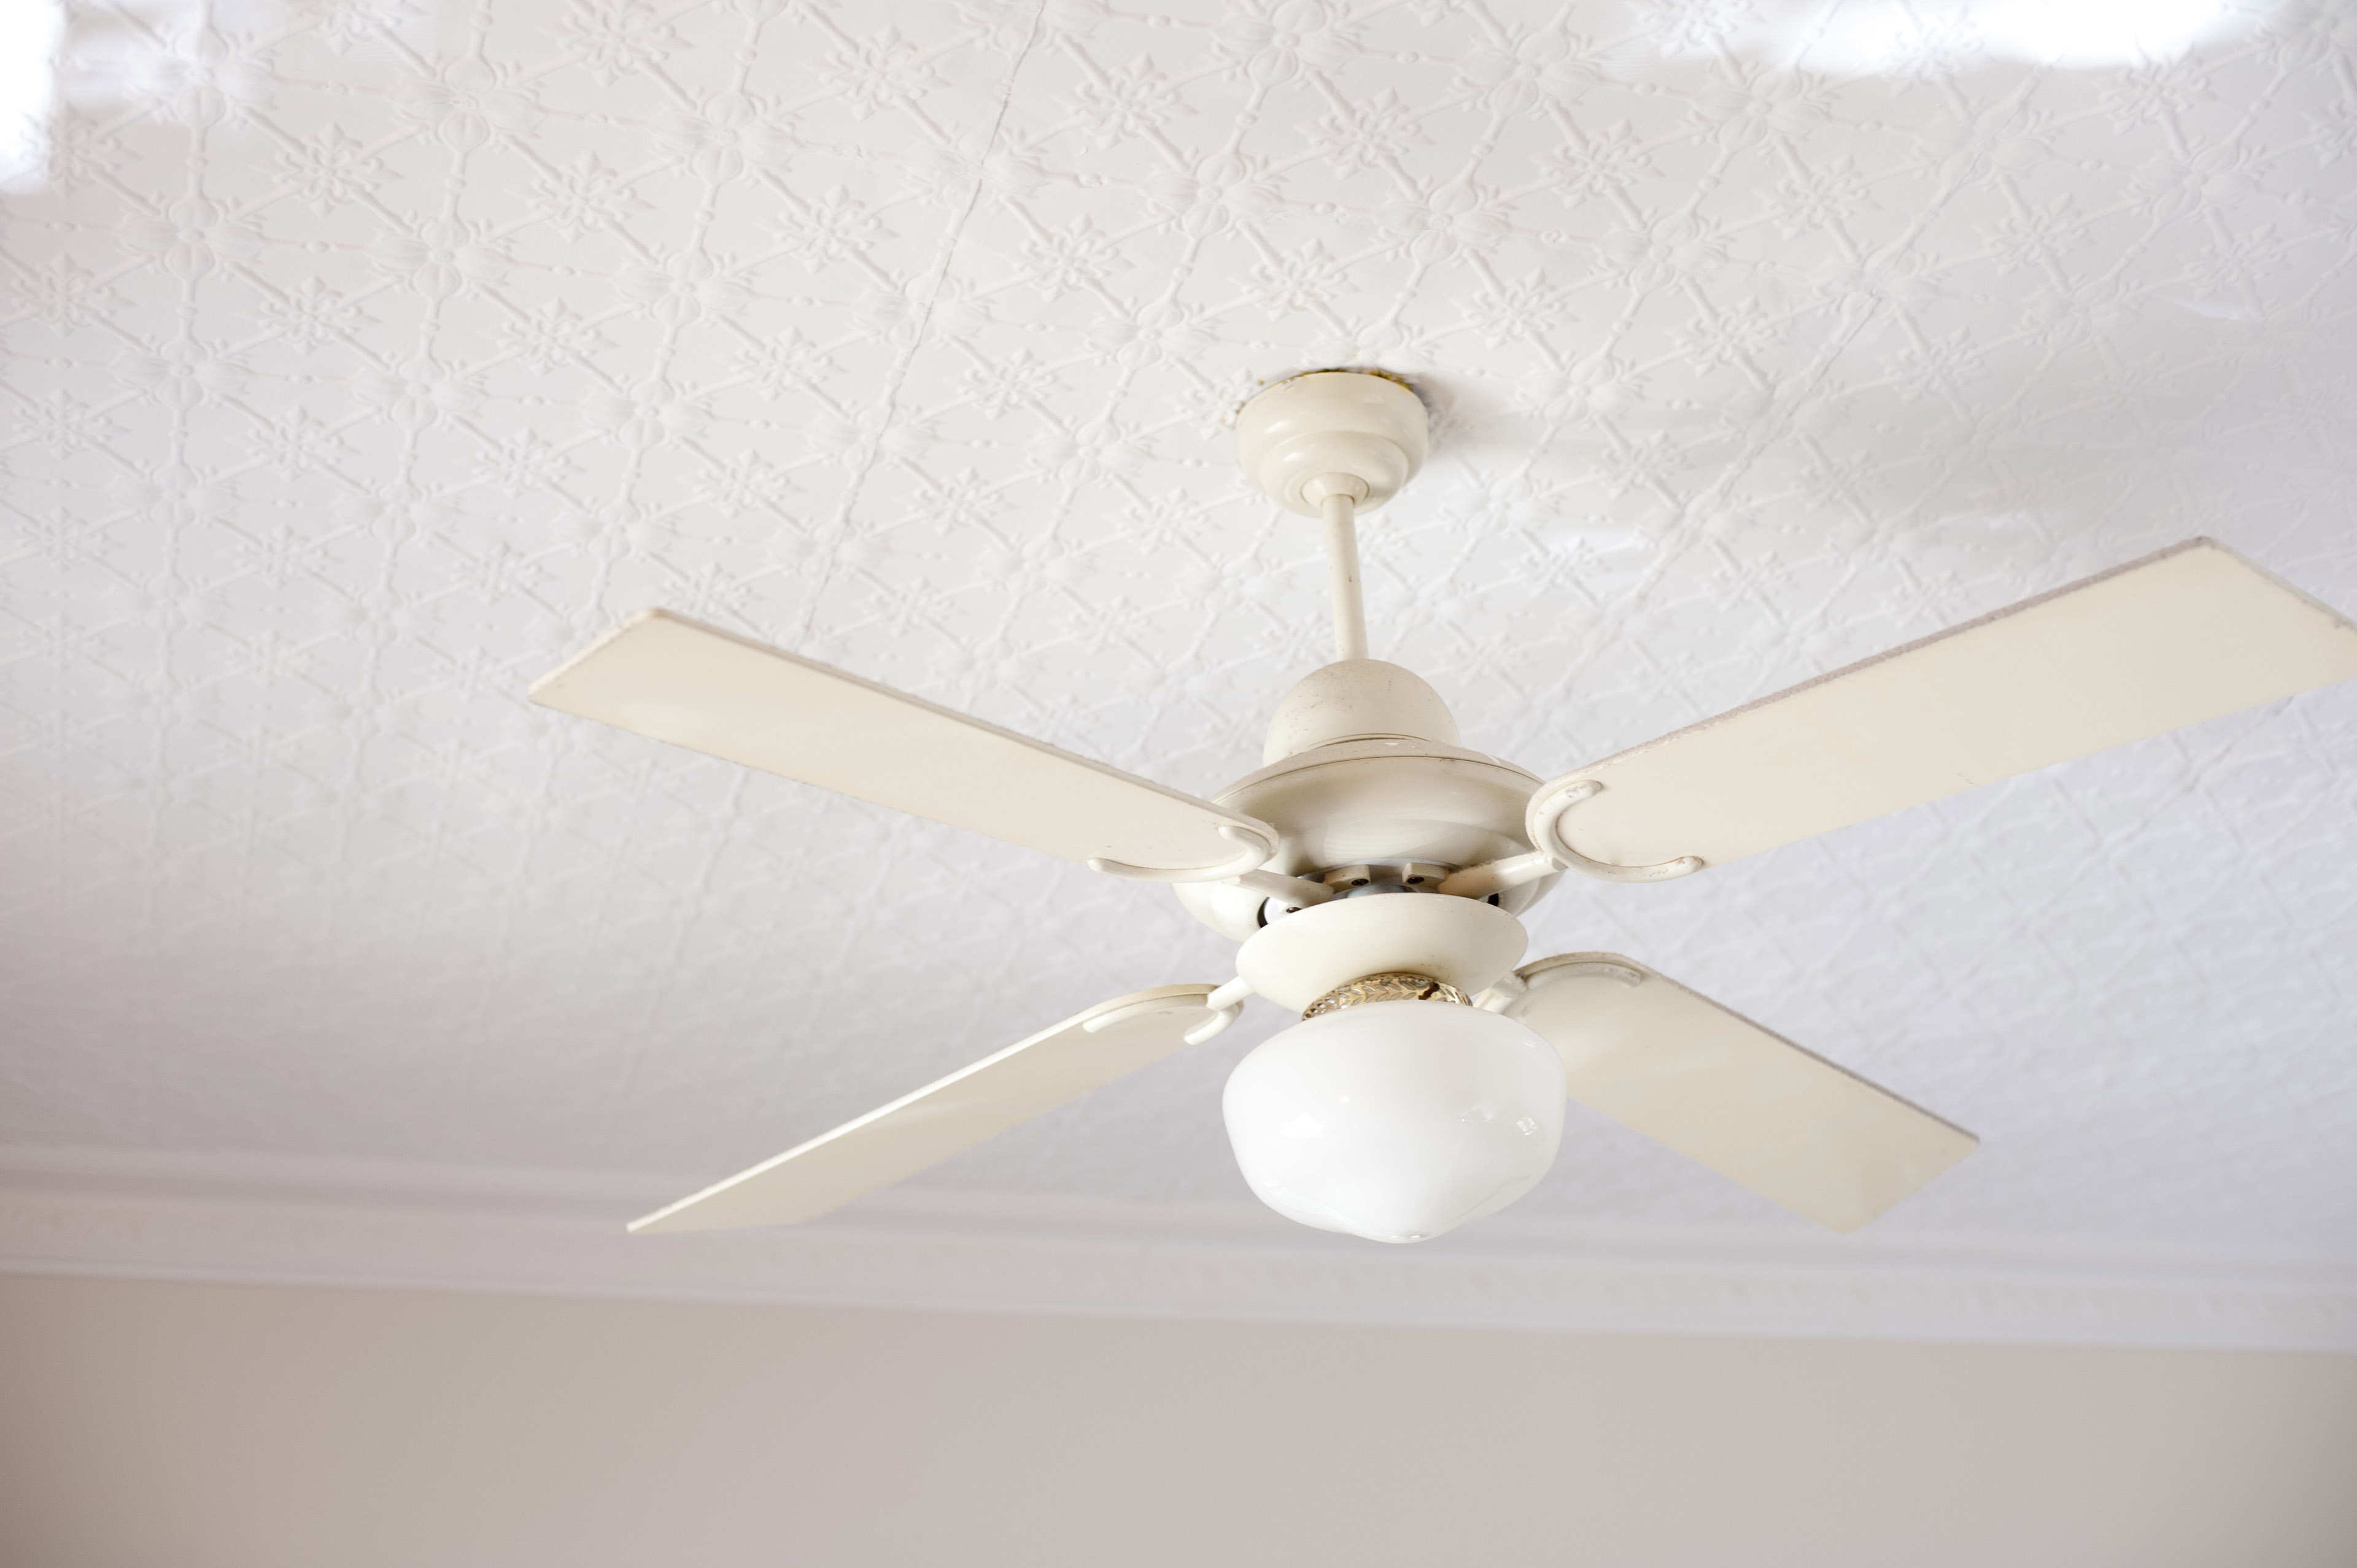 image of retro ceiling fan with light fixture freebie photography